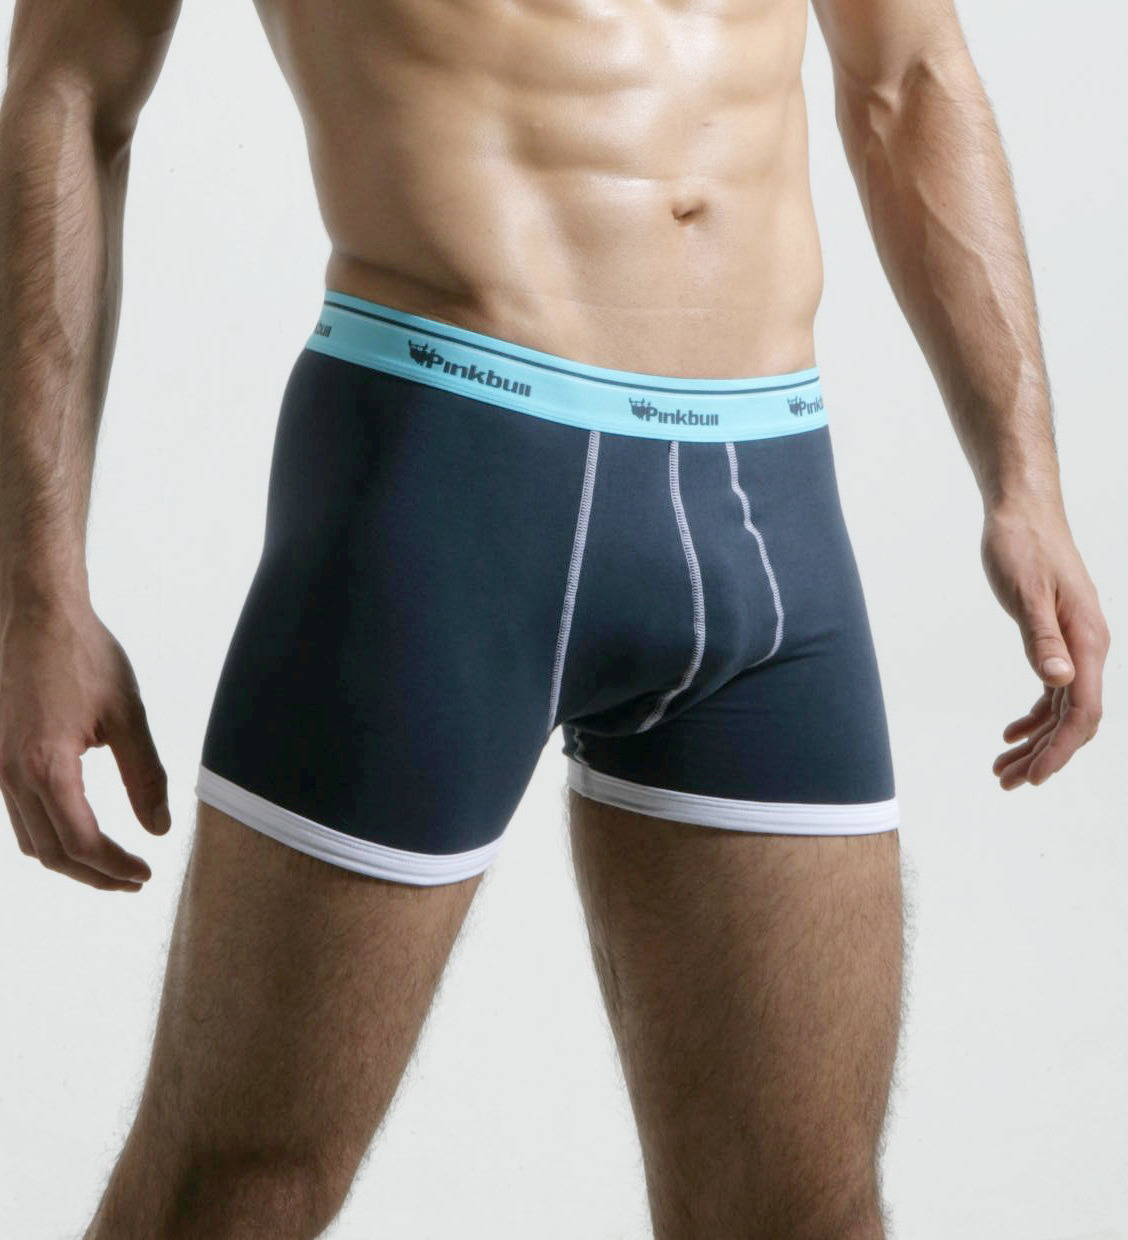 Men's Underwear from coolnup03t.gq Whether you're searching for a pack of classic briefs or a specific color or fit of boxers, coolnup03t.gq offers a wide range of comfortable, classic, and can't-go-wrong underwear for men.